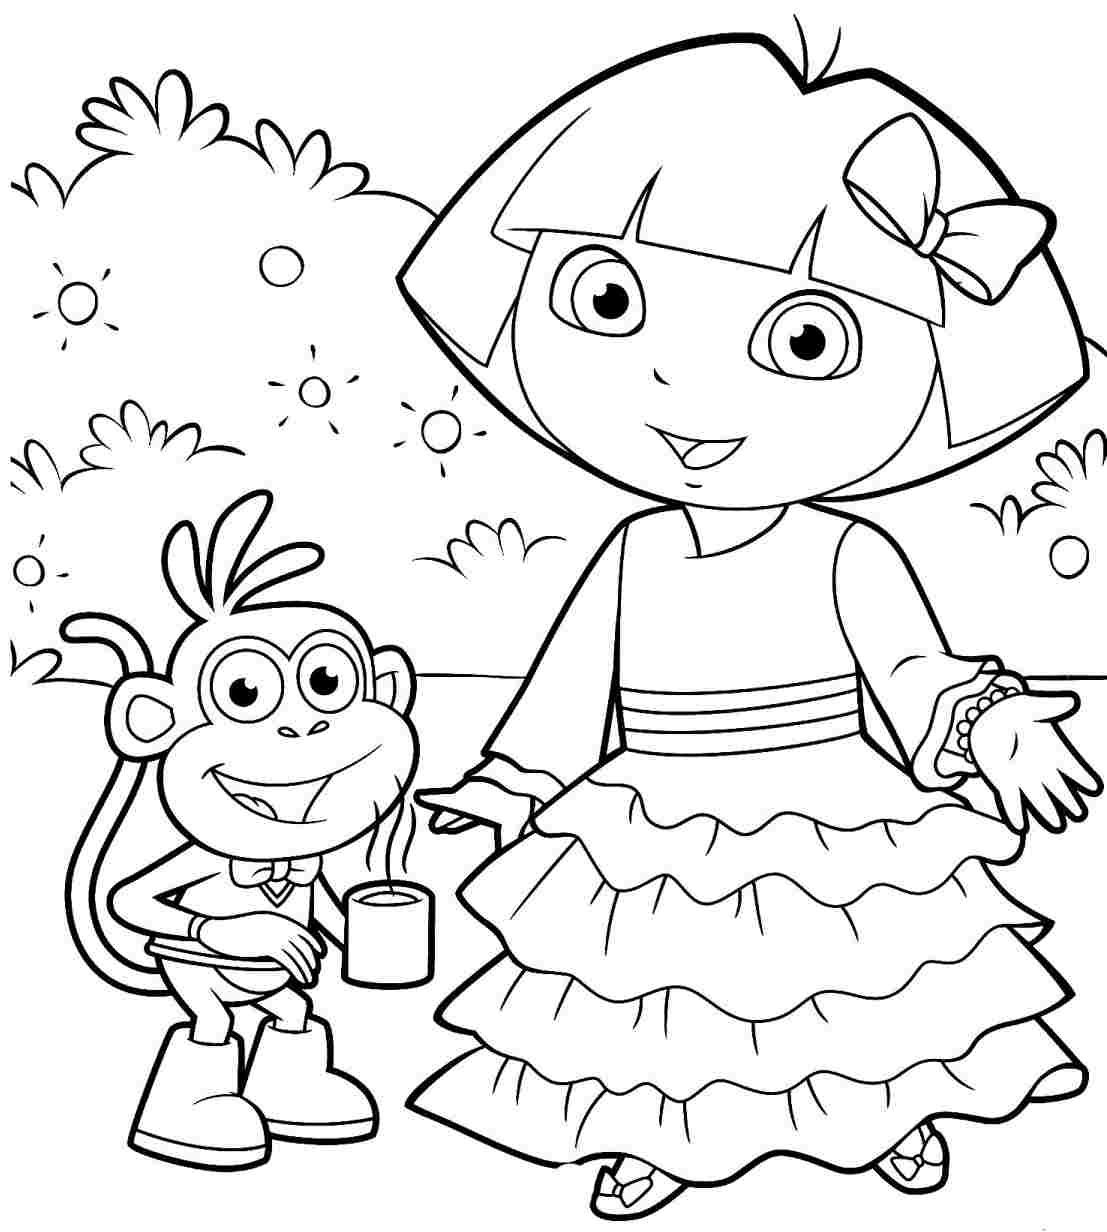 dora printable coloring pages free 25 wonderful dora the explorer coloring pages dora free printable pages coloring